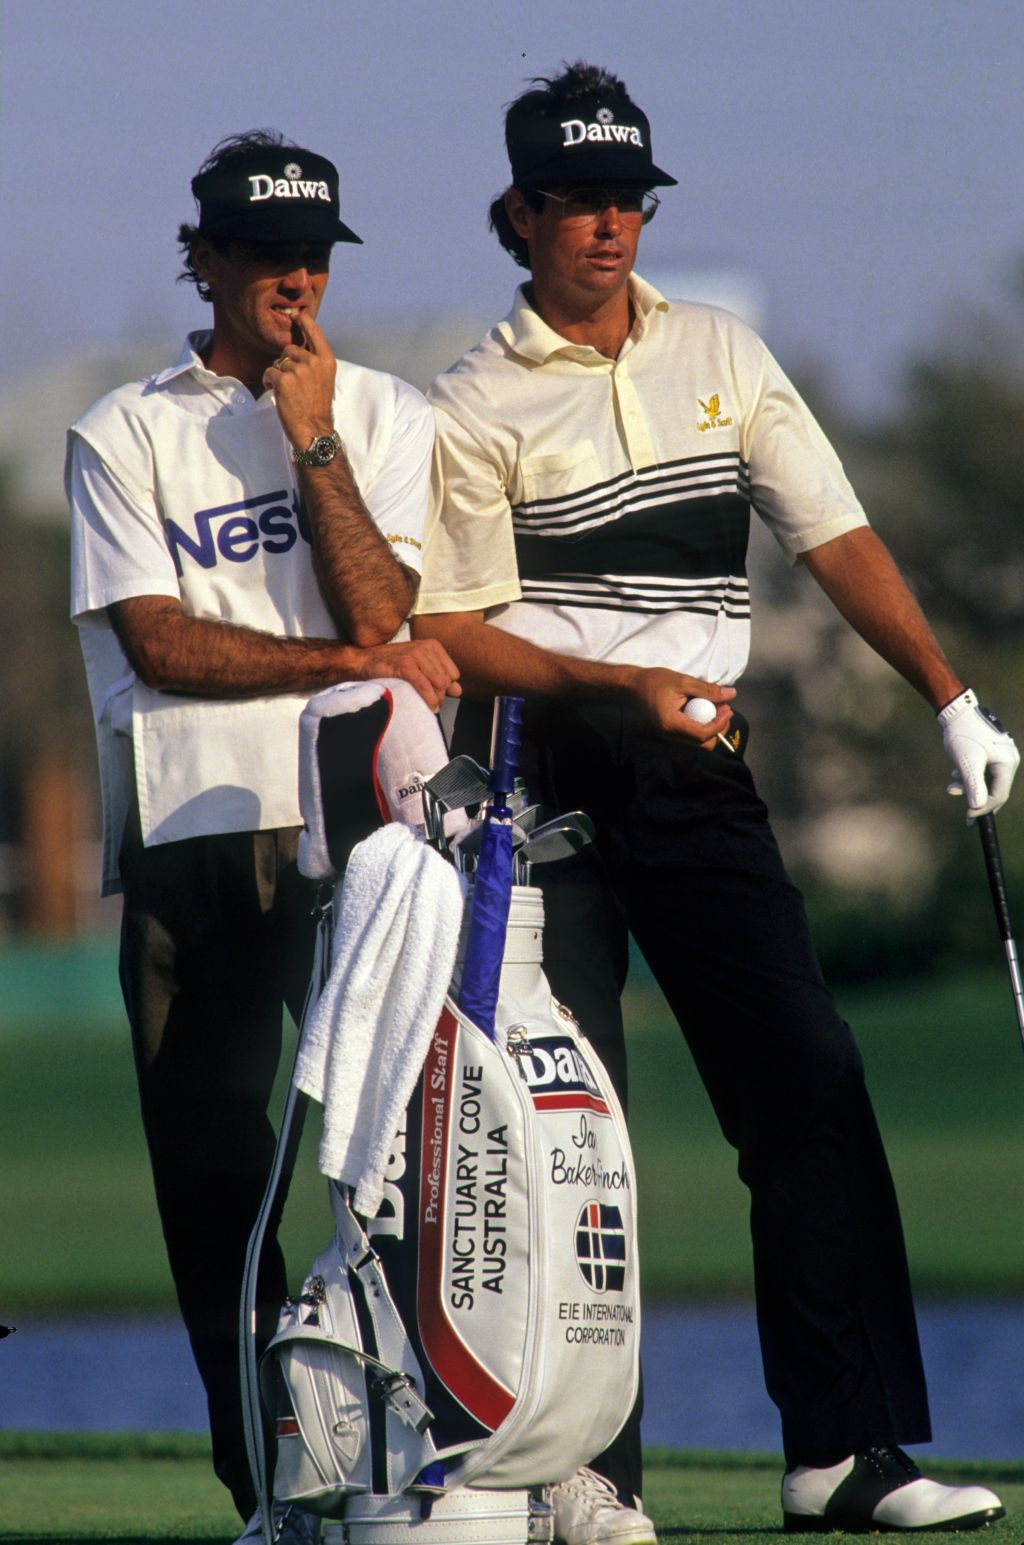 Ian Baker Finch and his caddie on the tee during the 1991 Nestle Invitational